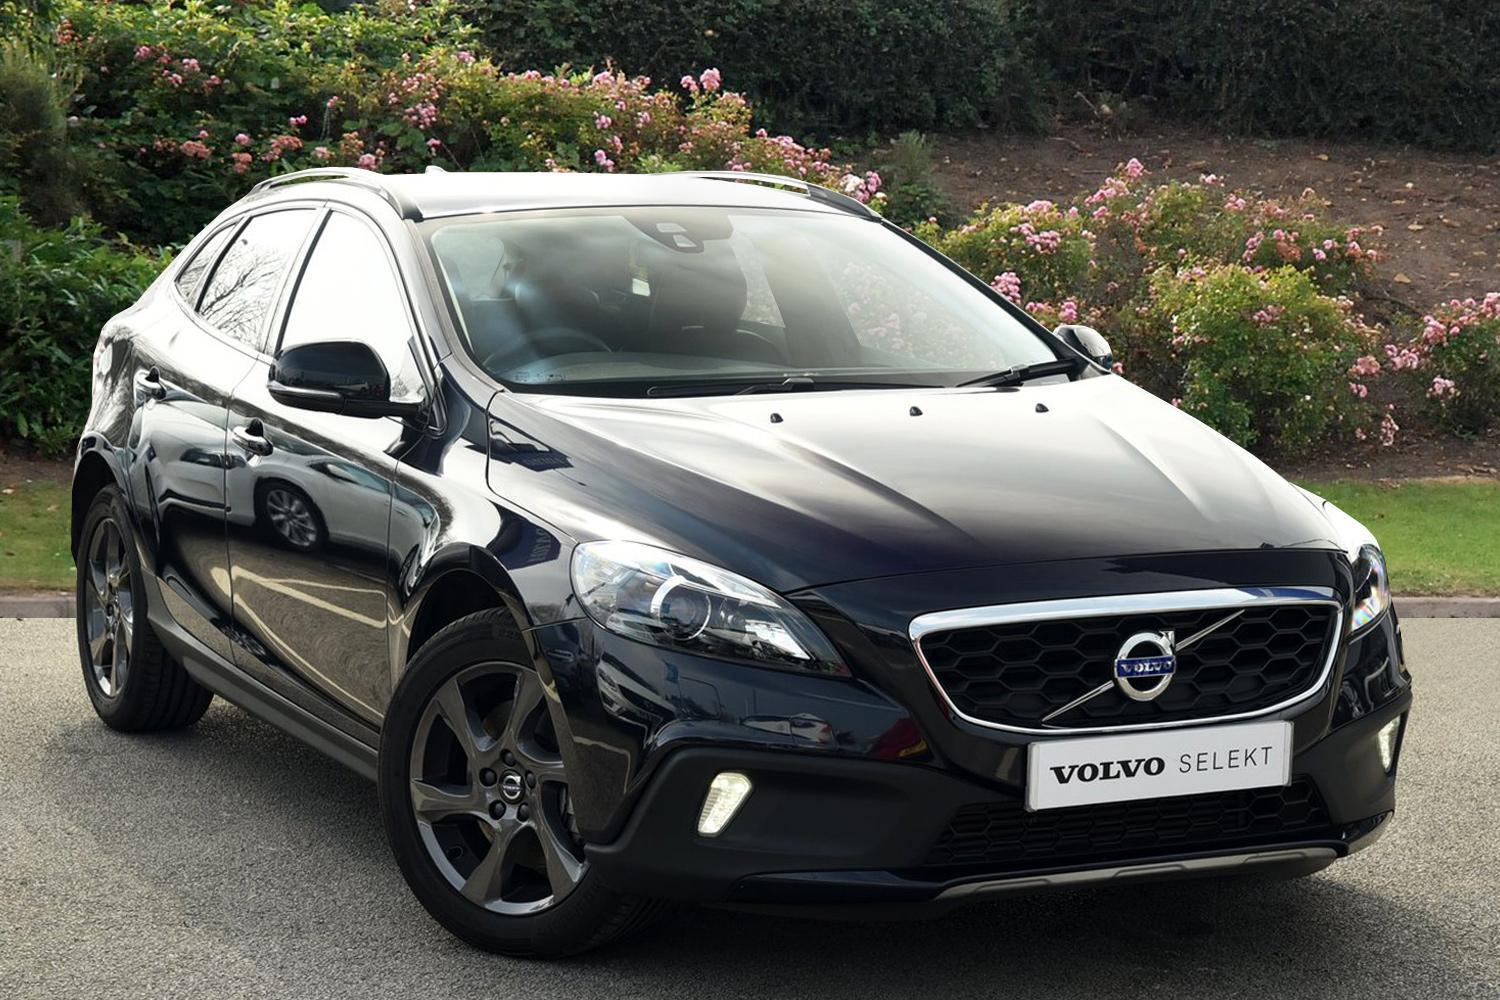 used volvo v40 d3 4 cyl 150 cross country lux nav 5dr diesel hatchback for sale bristol. Black Bedroom Furniture Sets. Home Design Ideas